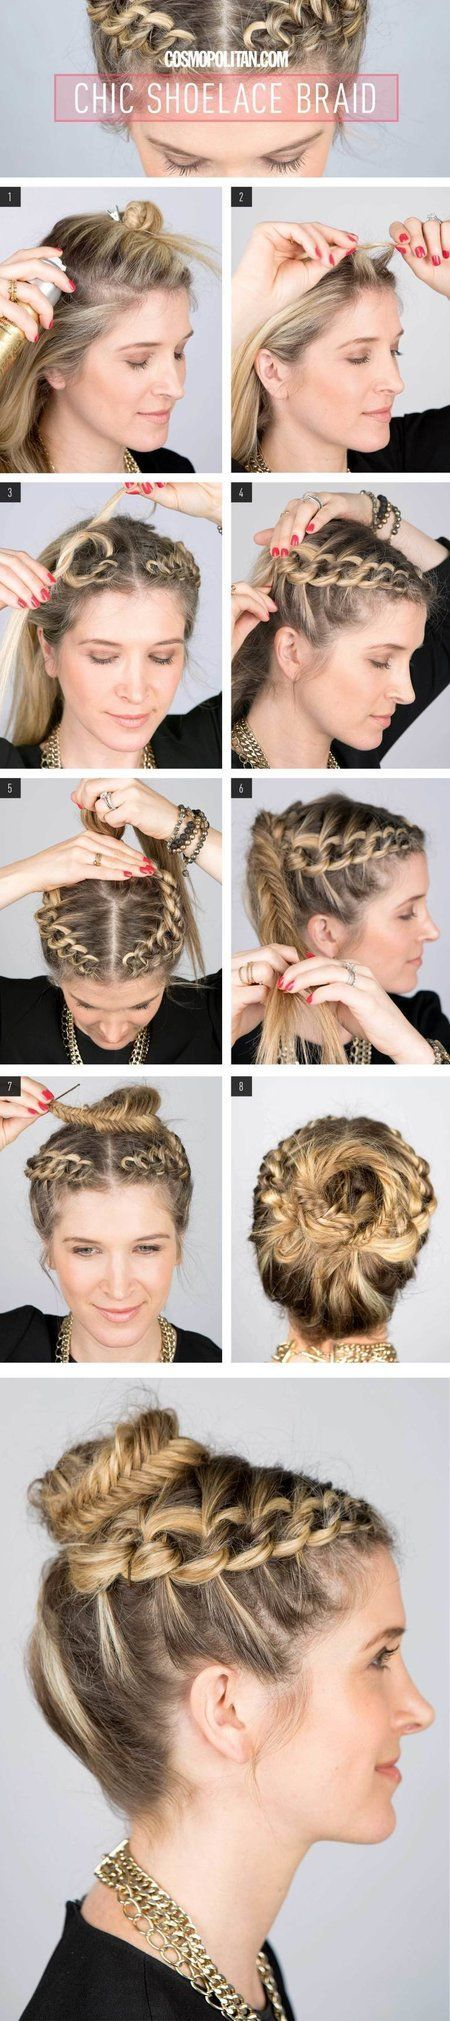 The chic shoelace braid it cute and perfect for the warm California weather